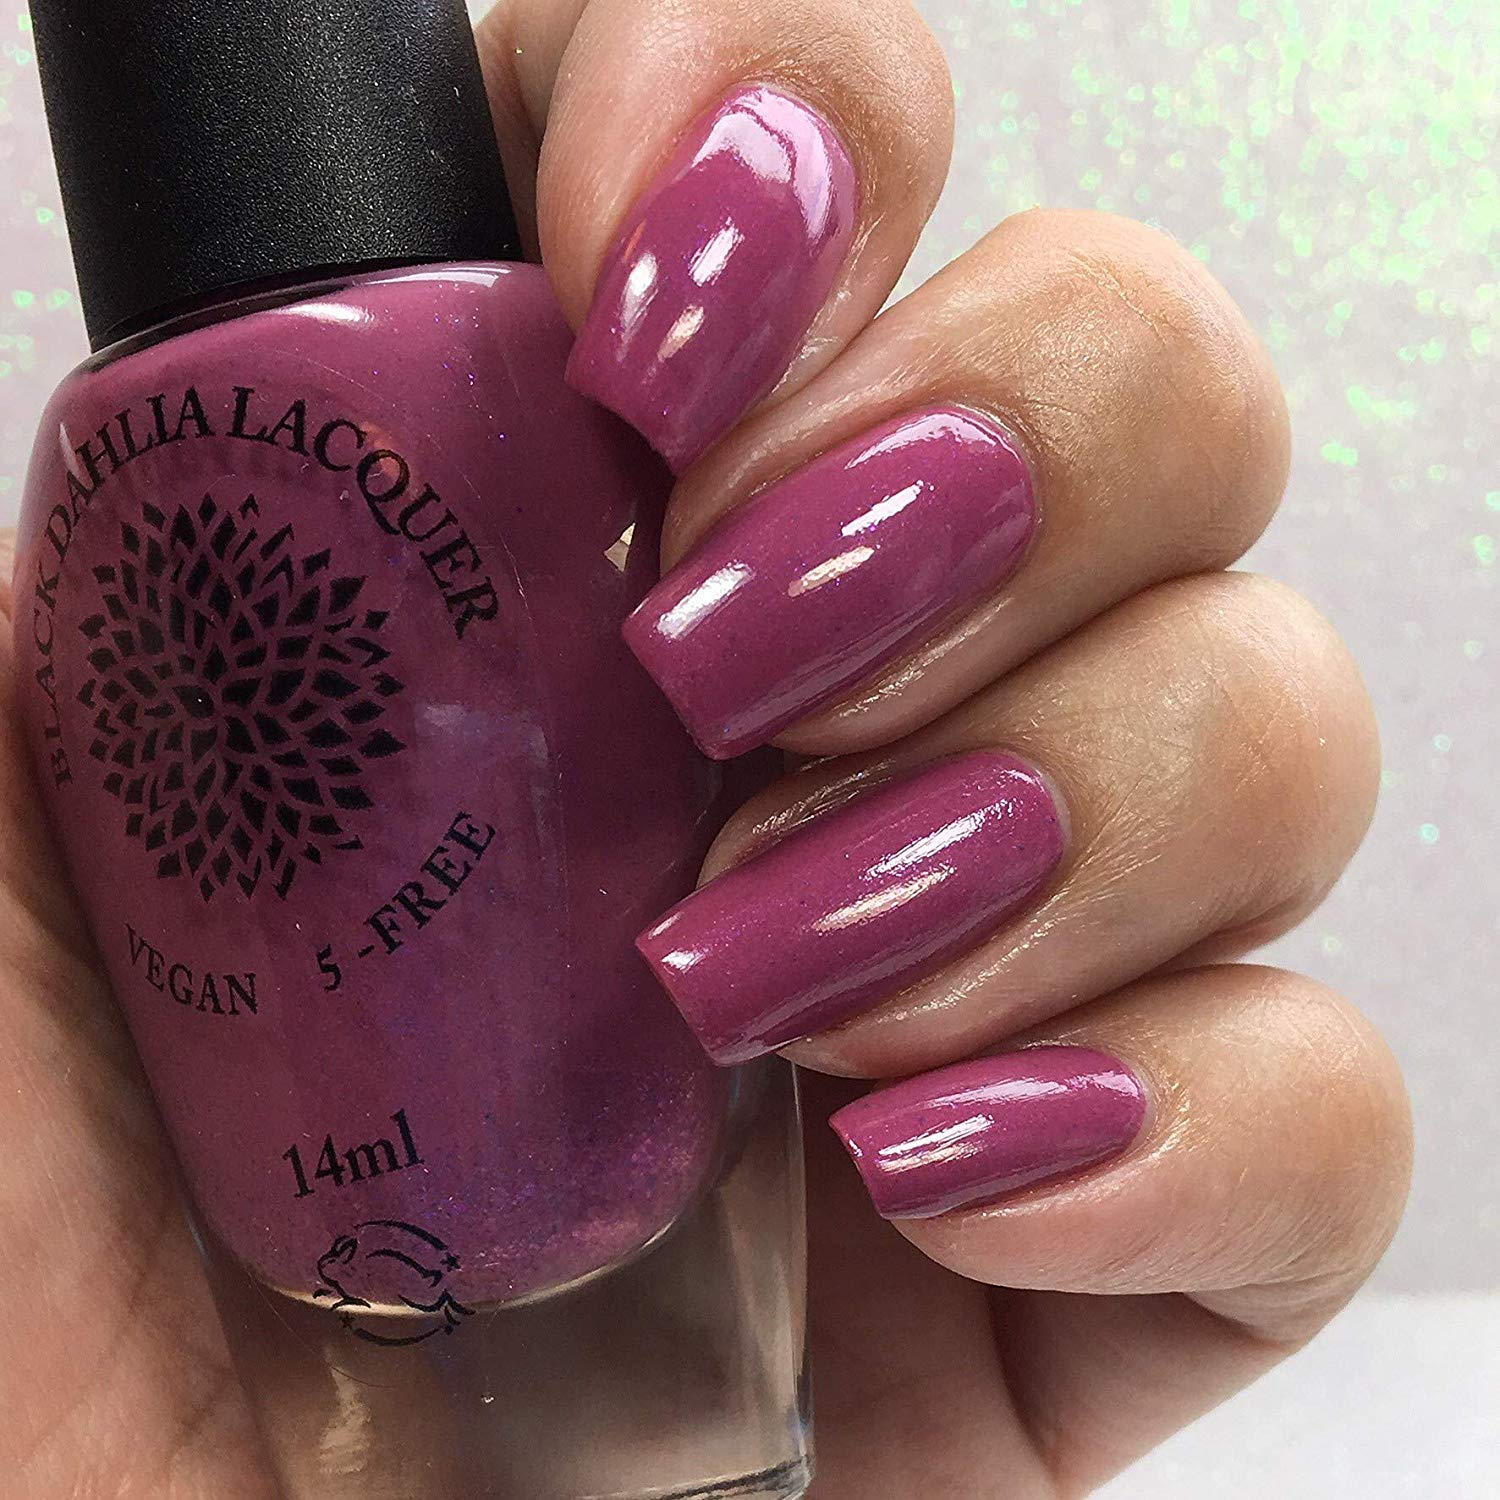 Blooming Lilac | Orchid Purple Shimmer Nail Polish with Blue, Hot Pink, Lavender & Neon Plum Flakies | by Black Dahlia Lacquer